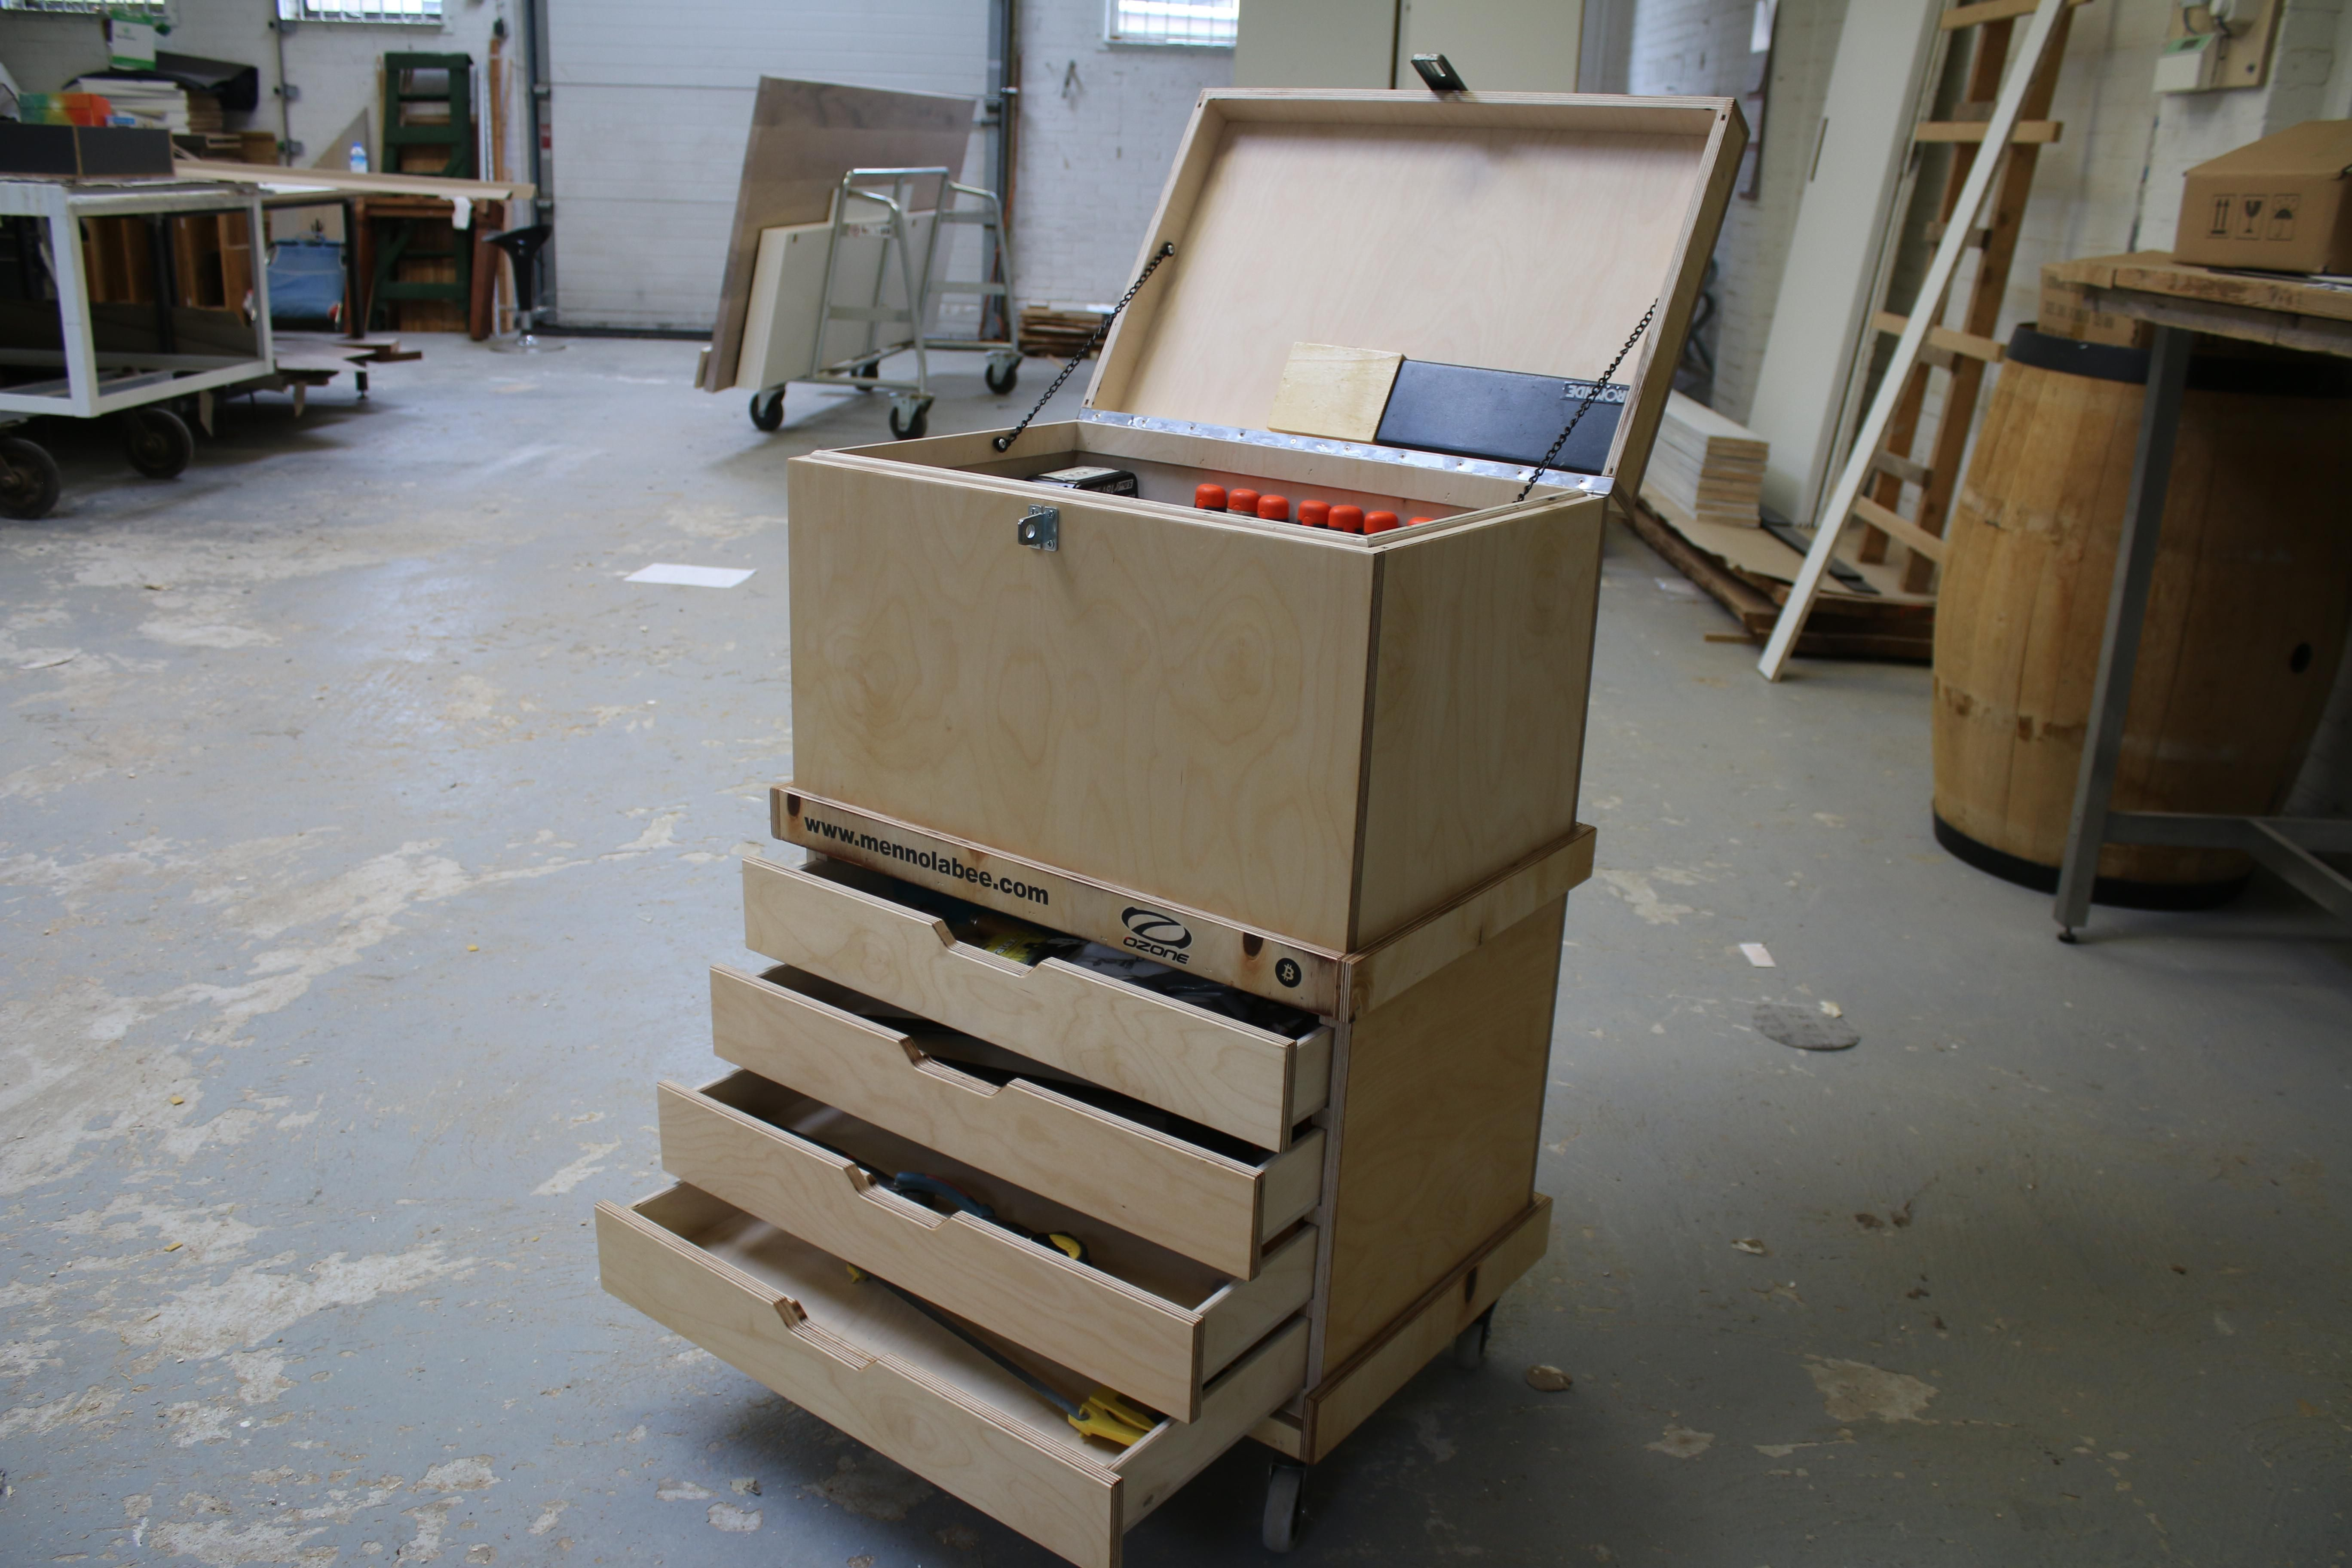 Made Myself A Toolbox From Berch Plywood Https Ift Tt 2uvjoso